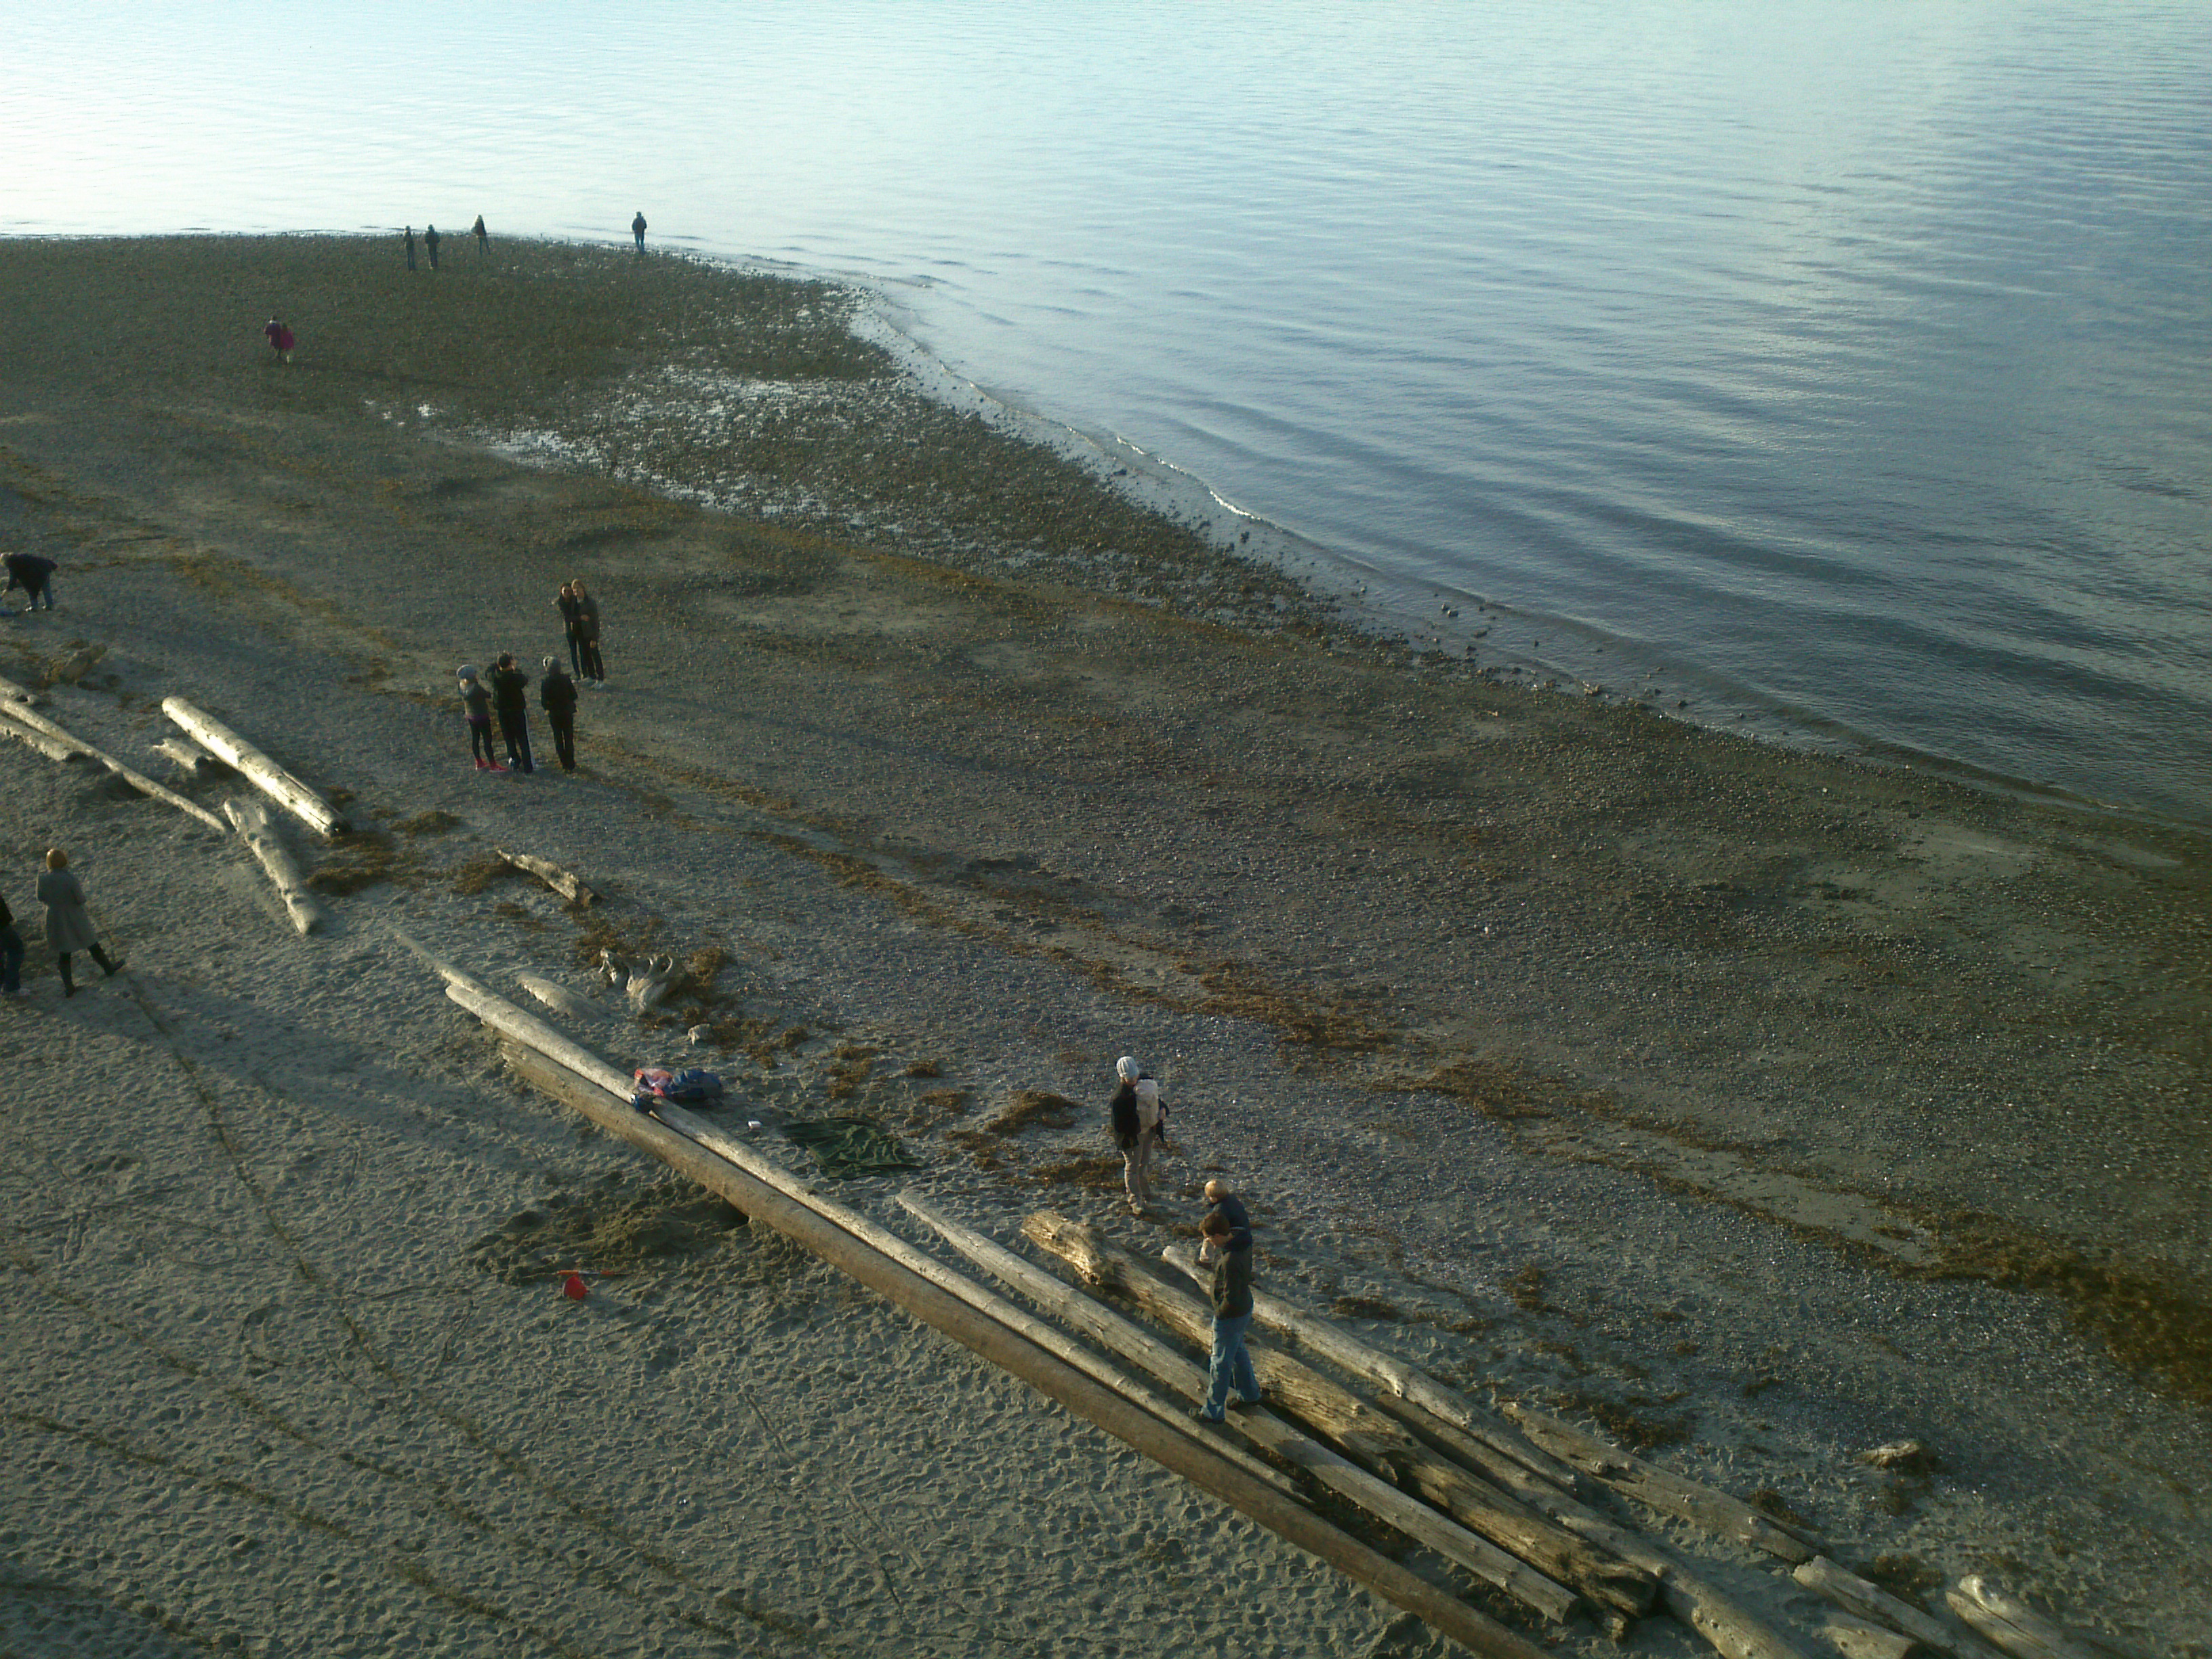 The beaches of Carkeek Park swept clean by Winter storms, New Year's Day 2012.